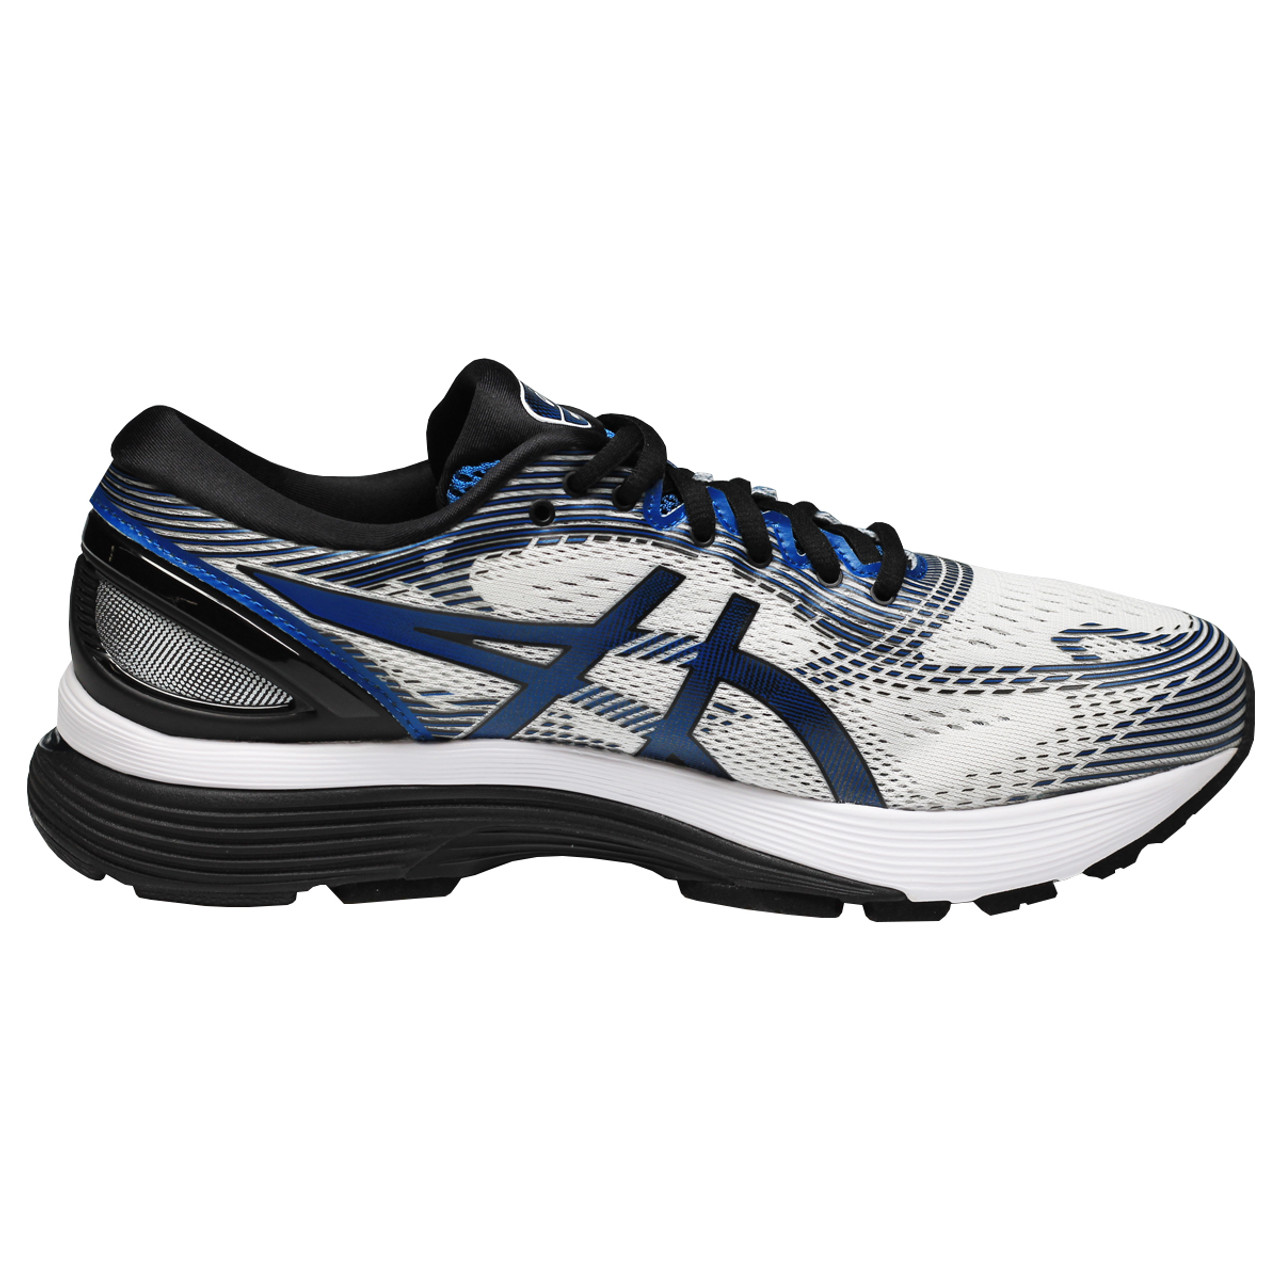 b4e146ea89 Asics Gel Nimbus 21 Men's Running Sneakers - White, Deep Sapphire